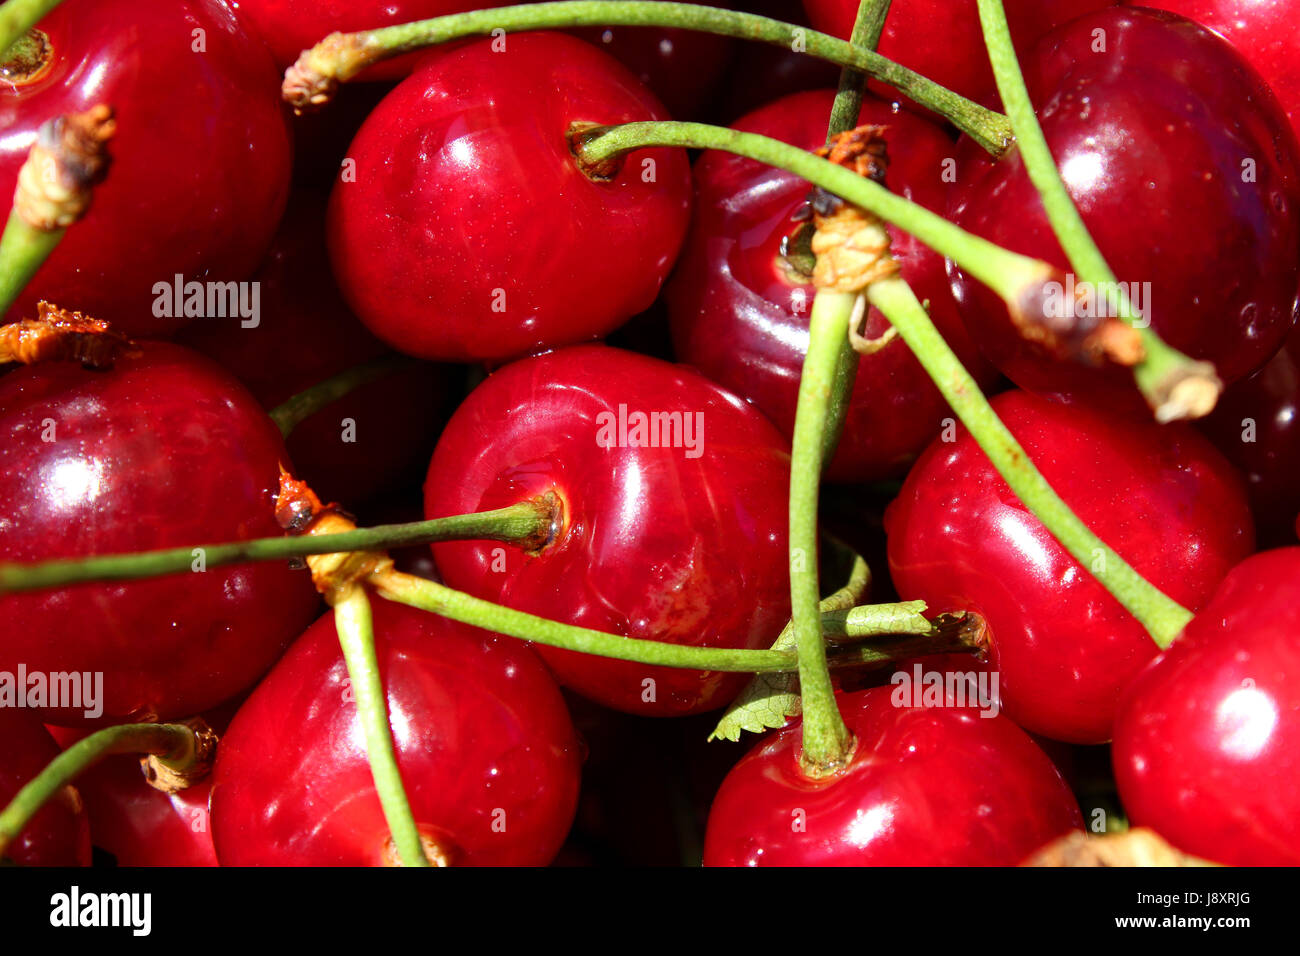 Cherry sweet red fresh fruit texture as background. Stock Photo